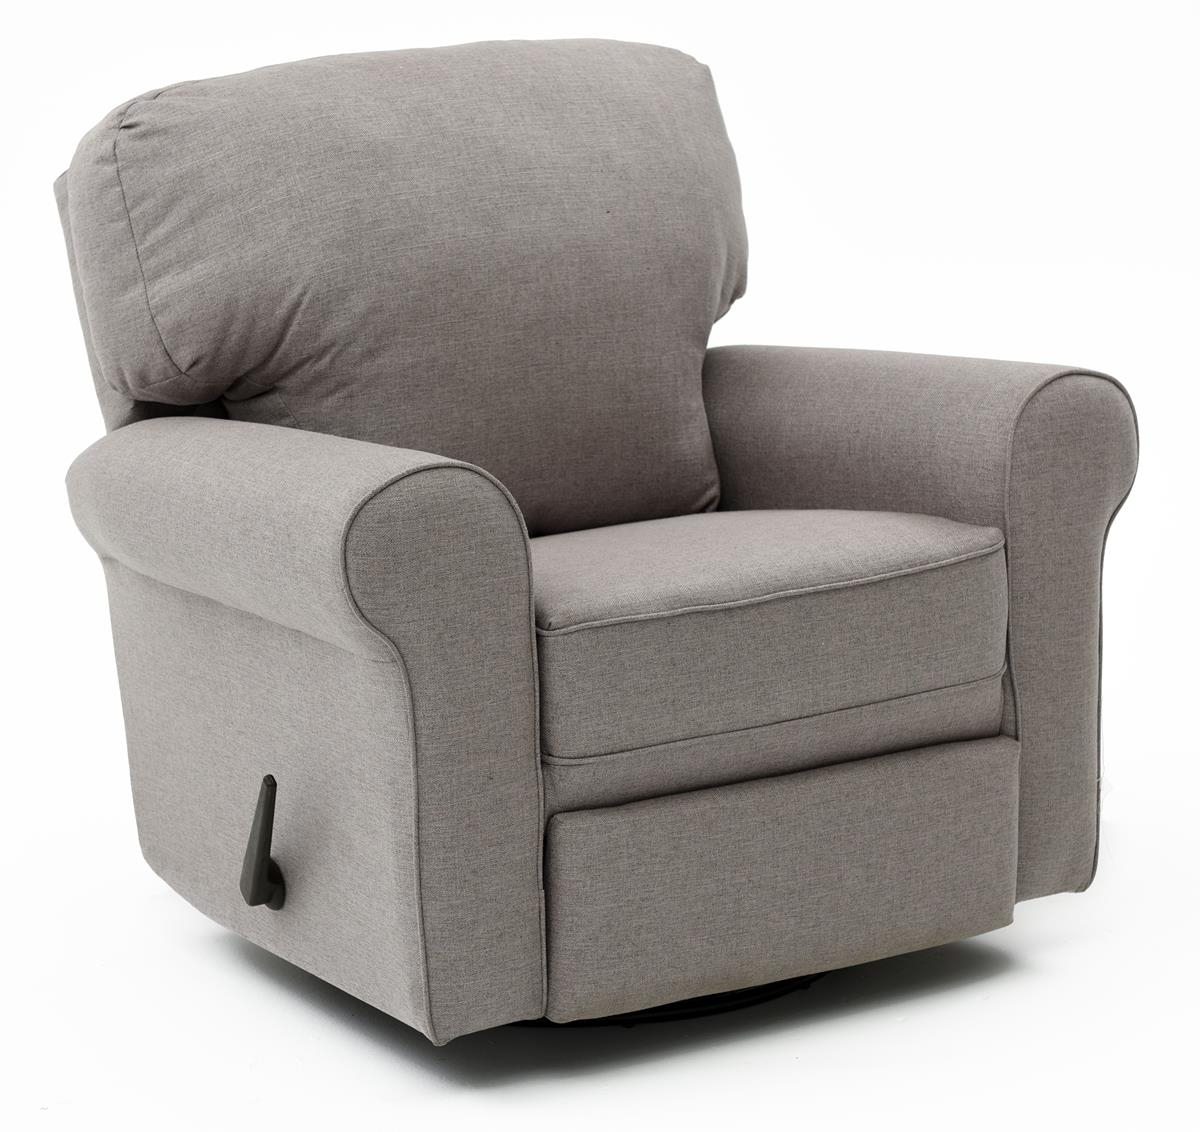 Leather Swivel Rocker Recliner And Its Benefits | Pertaining To Decker Ii Fabric Swivel Rocker Recliners (Image 10 of 20)